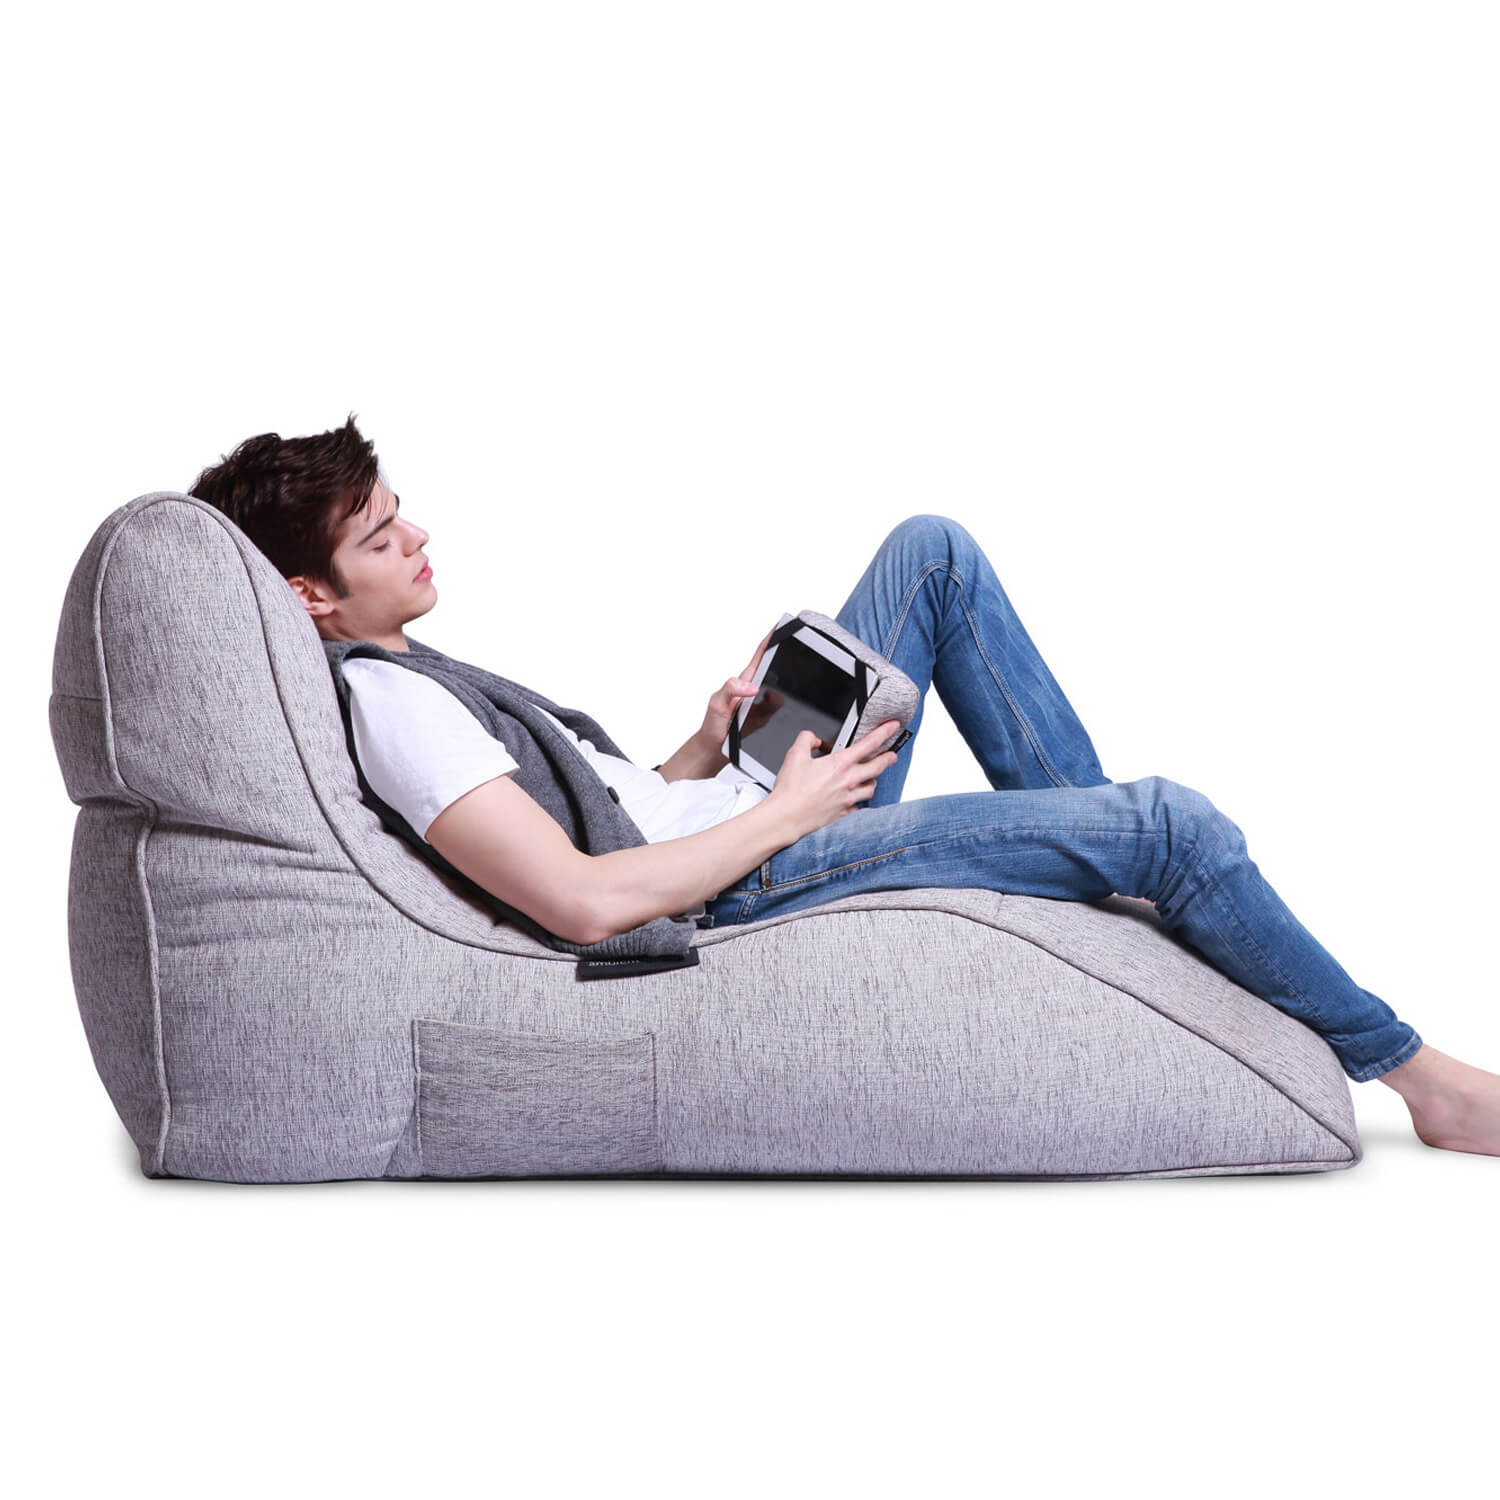 Home Cinema Indoor Bean Bag Avatar Lounger Tundra